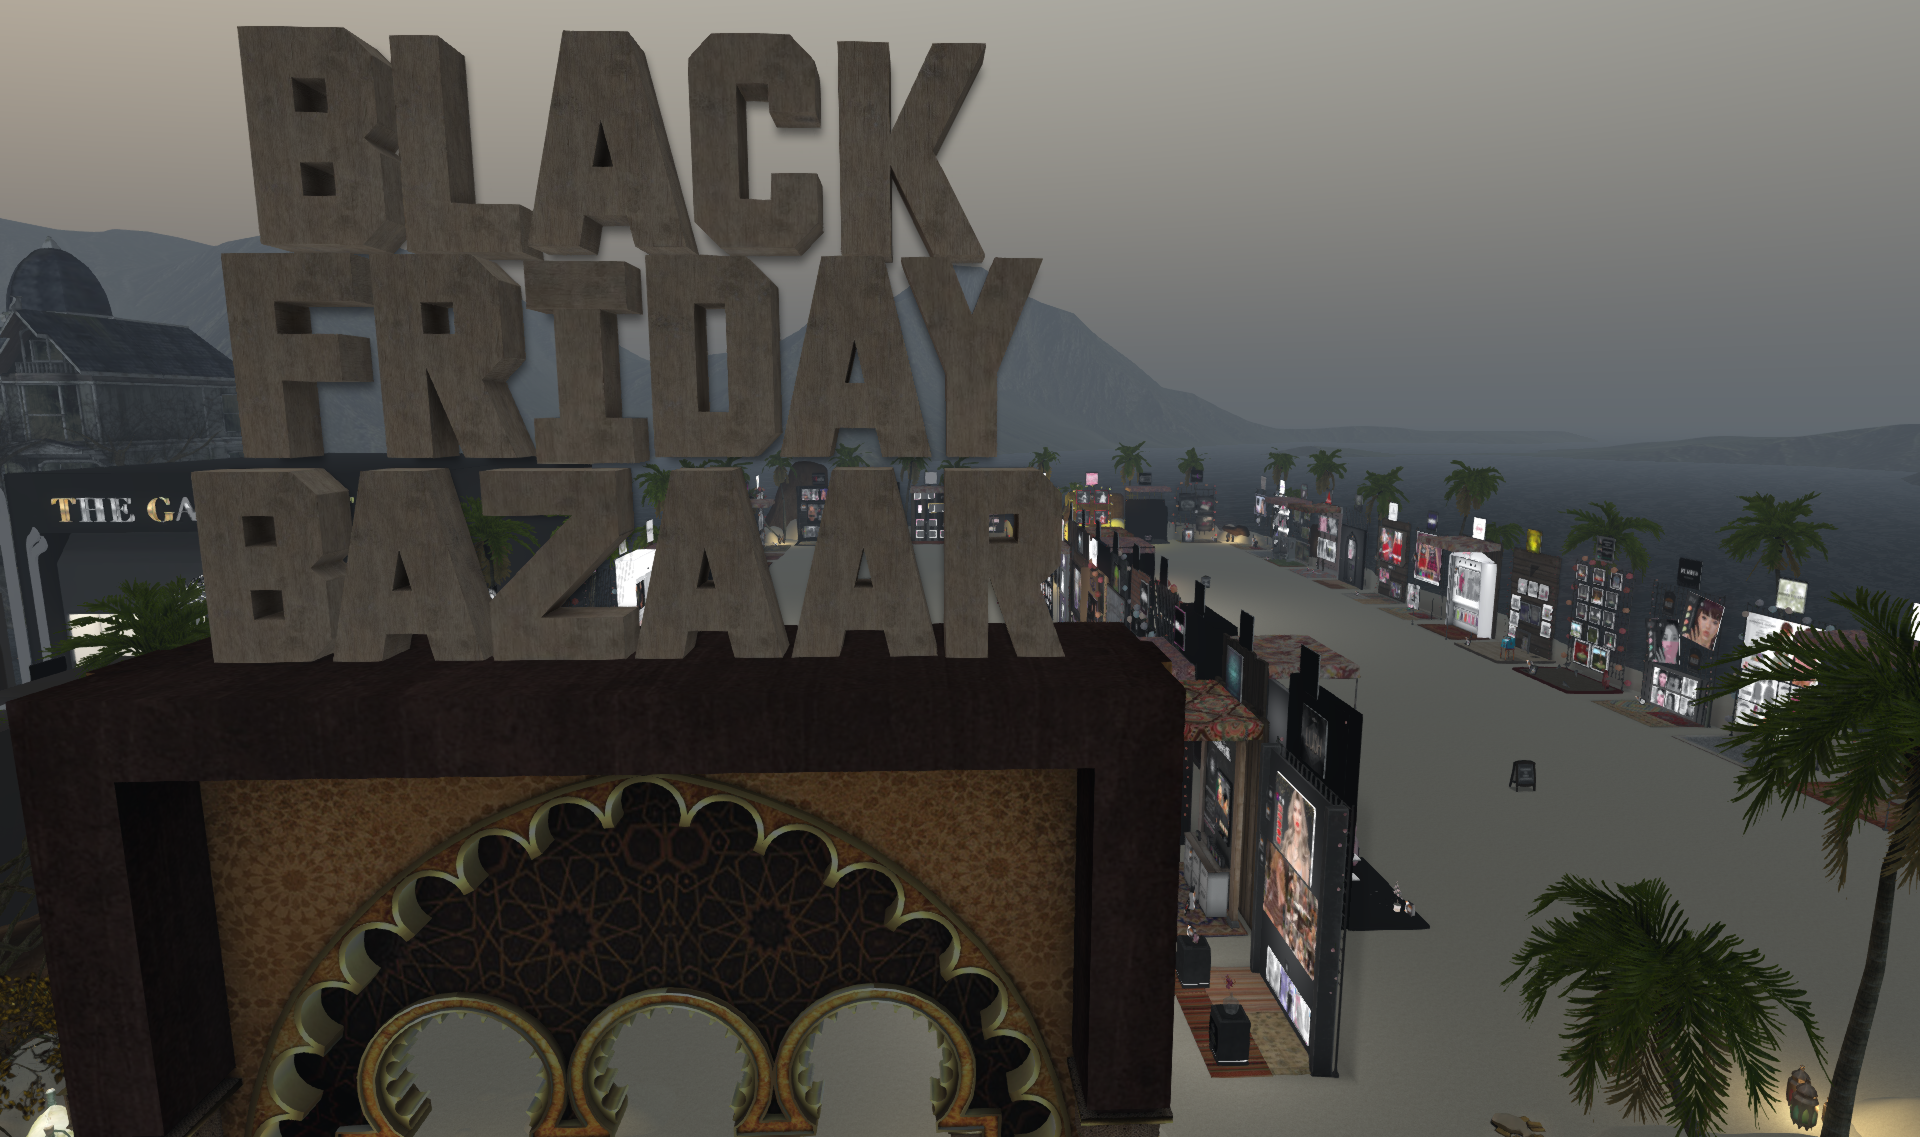 Black Friday Bazaar